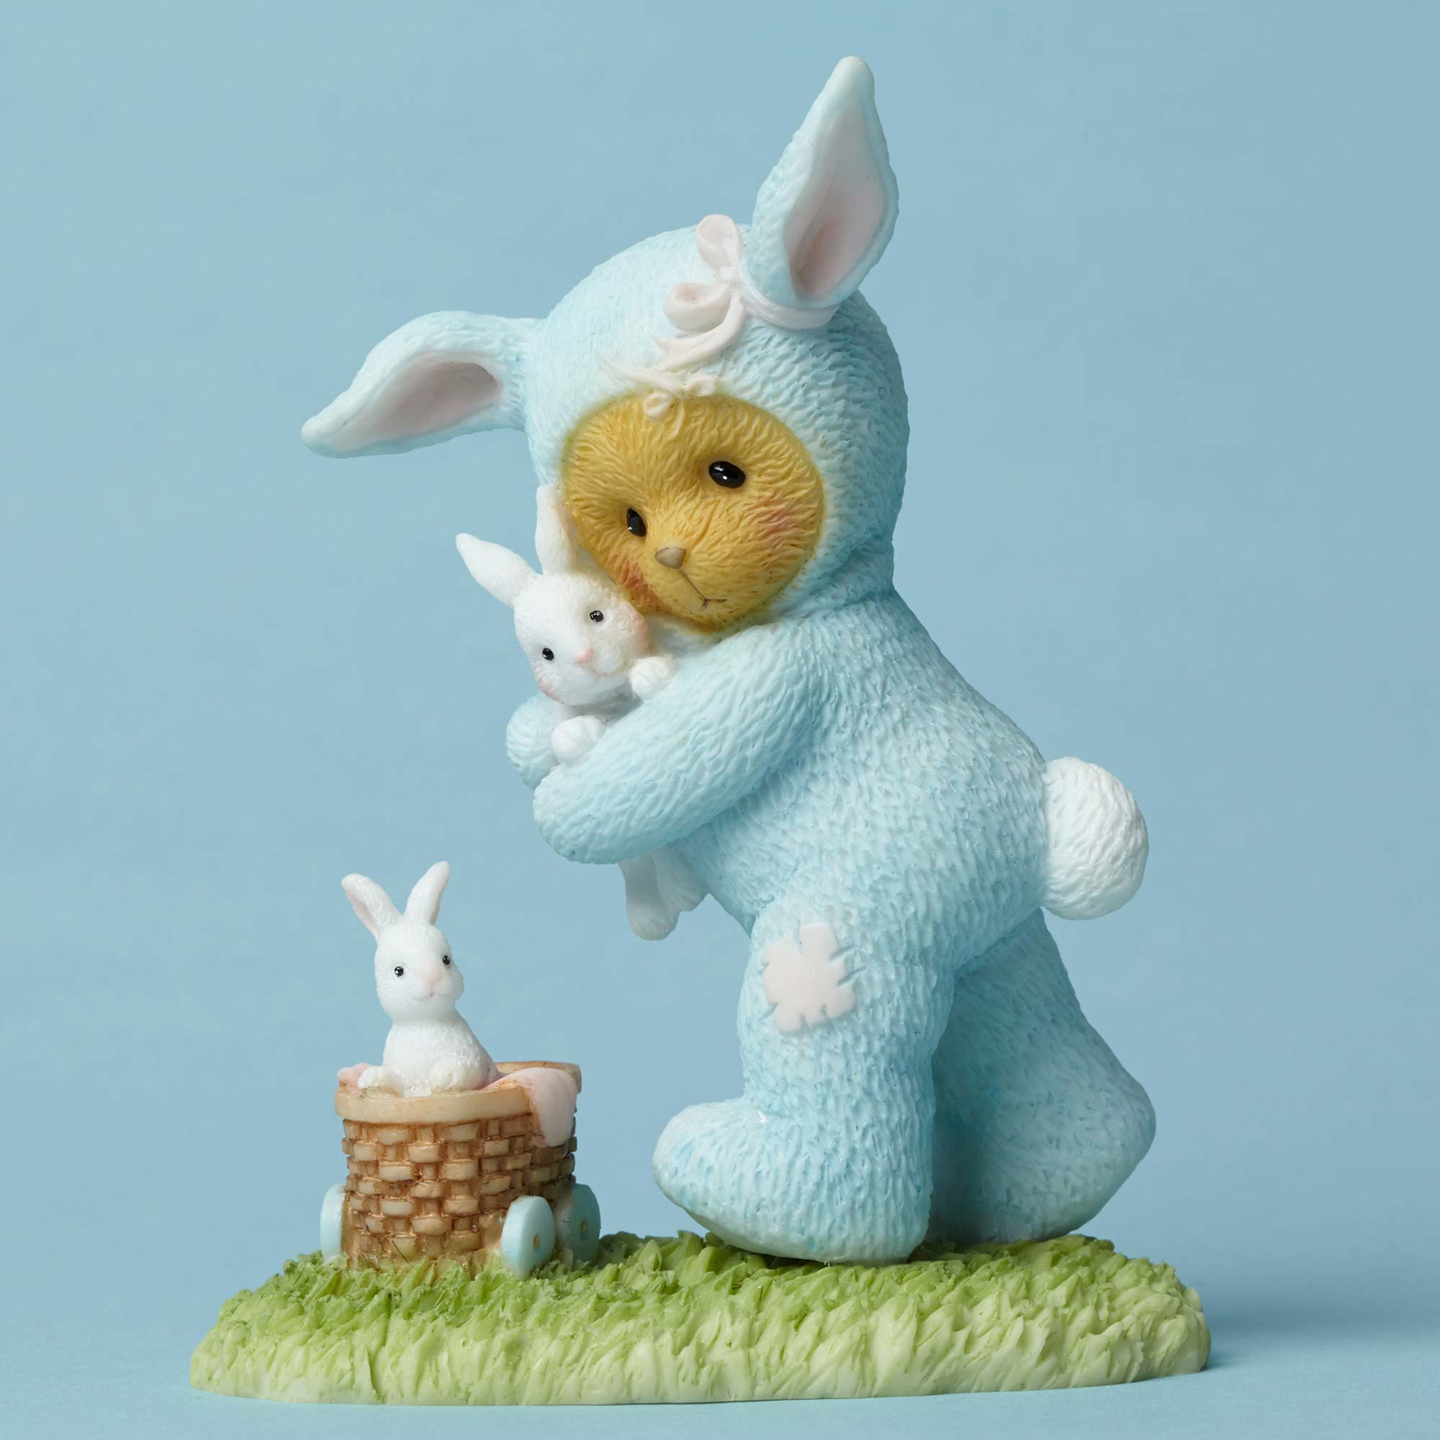 Cherished Teddies 4051039 Bear Dressed as Bunny New 2015